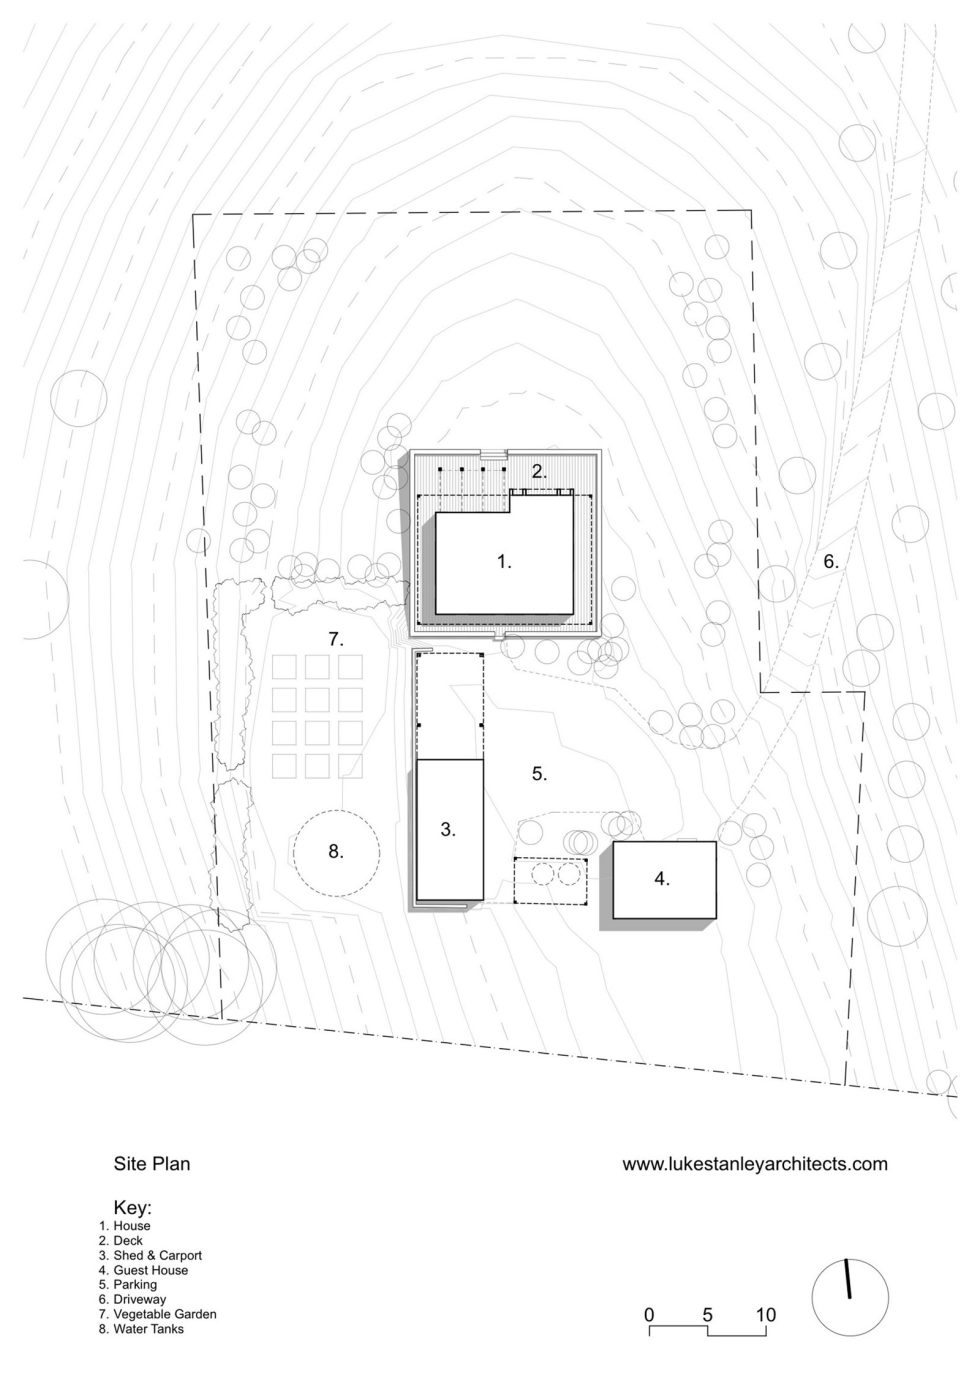 Plinth House in Australia from the Luke Stanley Architects - Site Plan